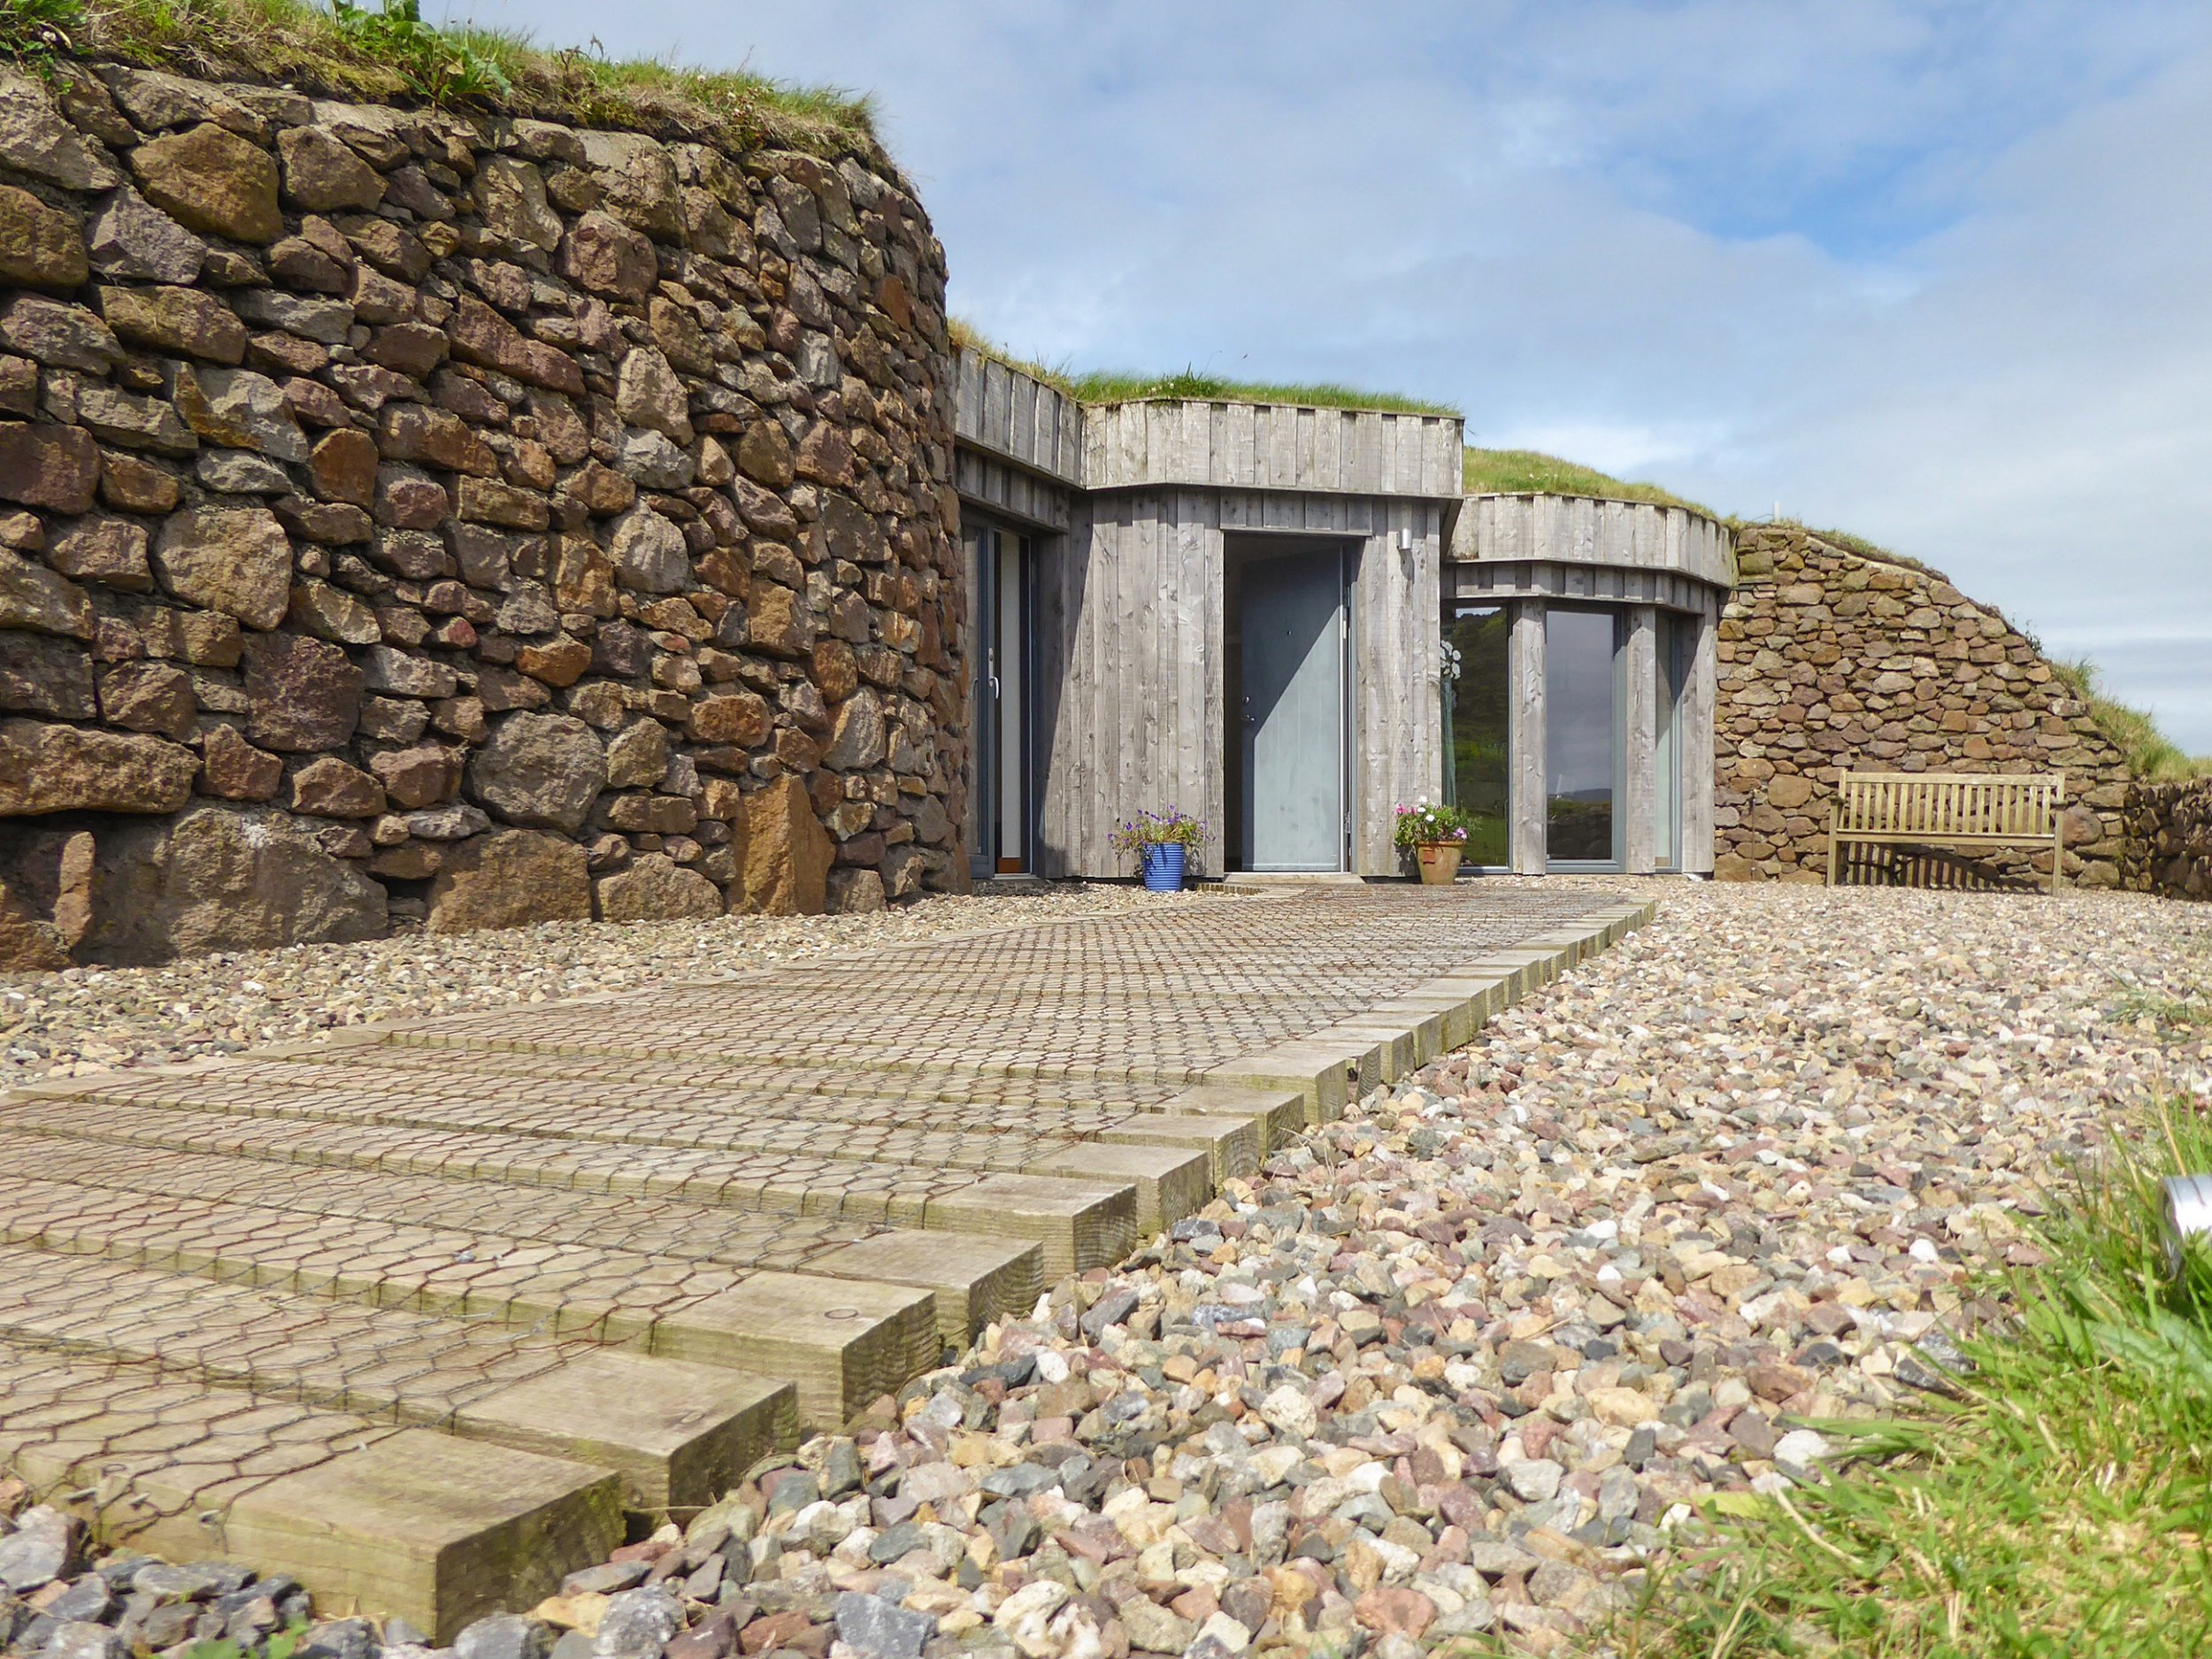 Exterior. LIVE like the Flinstones without giving up any luxury in this stunning cottage built into the hillside which is available to rent for ??63.50 per person per night. Incredible images show the exterior of the one-bed cottage which blends into the countryside with its natural stones walls and large windows dug into the hill. Other striking shots show the cosy living room complete with wood-burning stove, modern kitchen and sleek, tiled bathroom. High Trodigal is located in Machrihanish, near Campbeltown, Argyll and Bute, Scotland ans is currently listed on www.cottages.com for ??889 for a week???s stay. Cottages.com / mediadrumimages.com